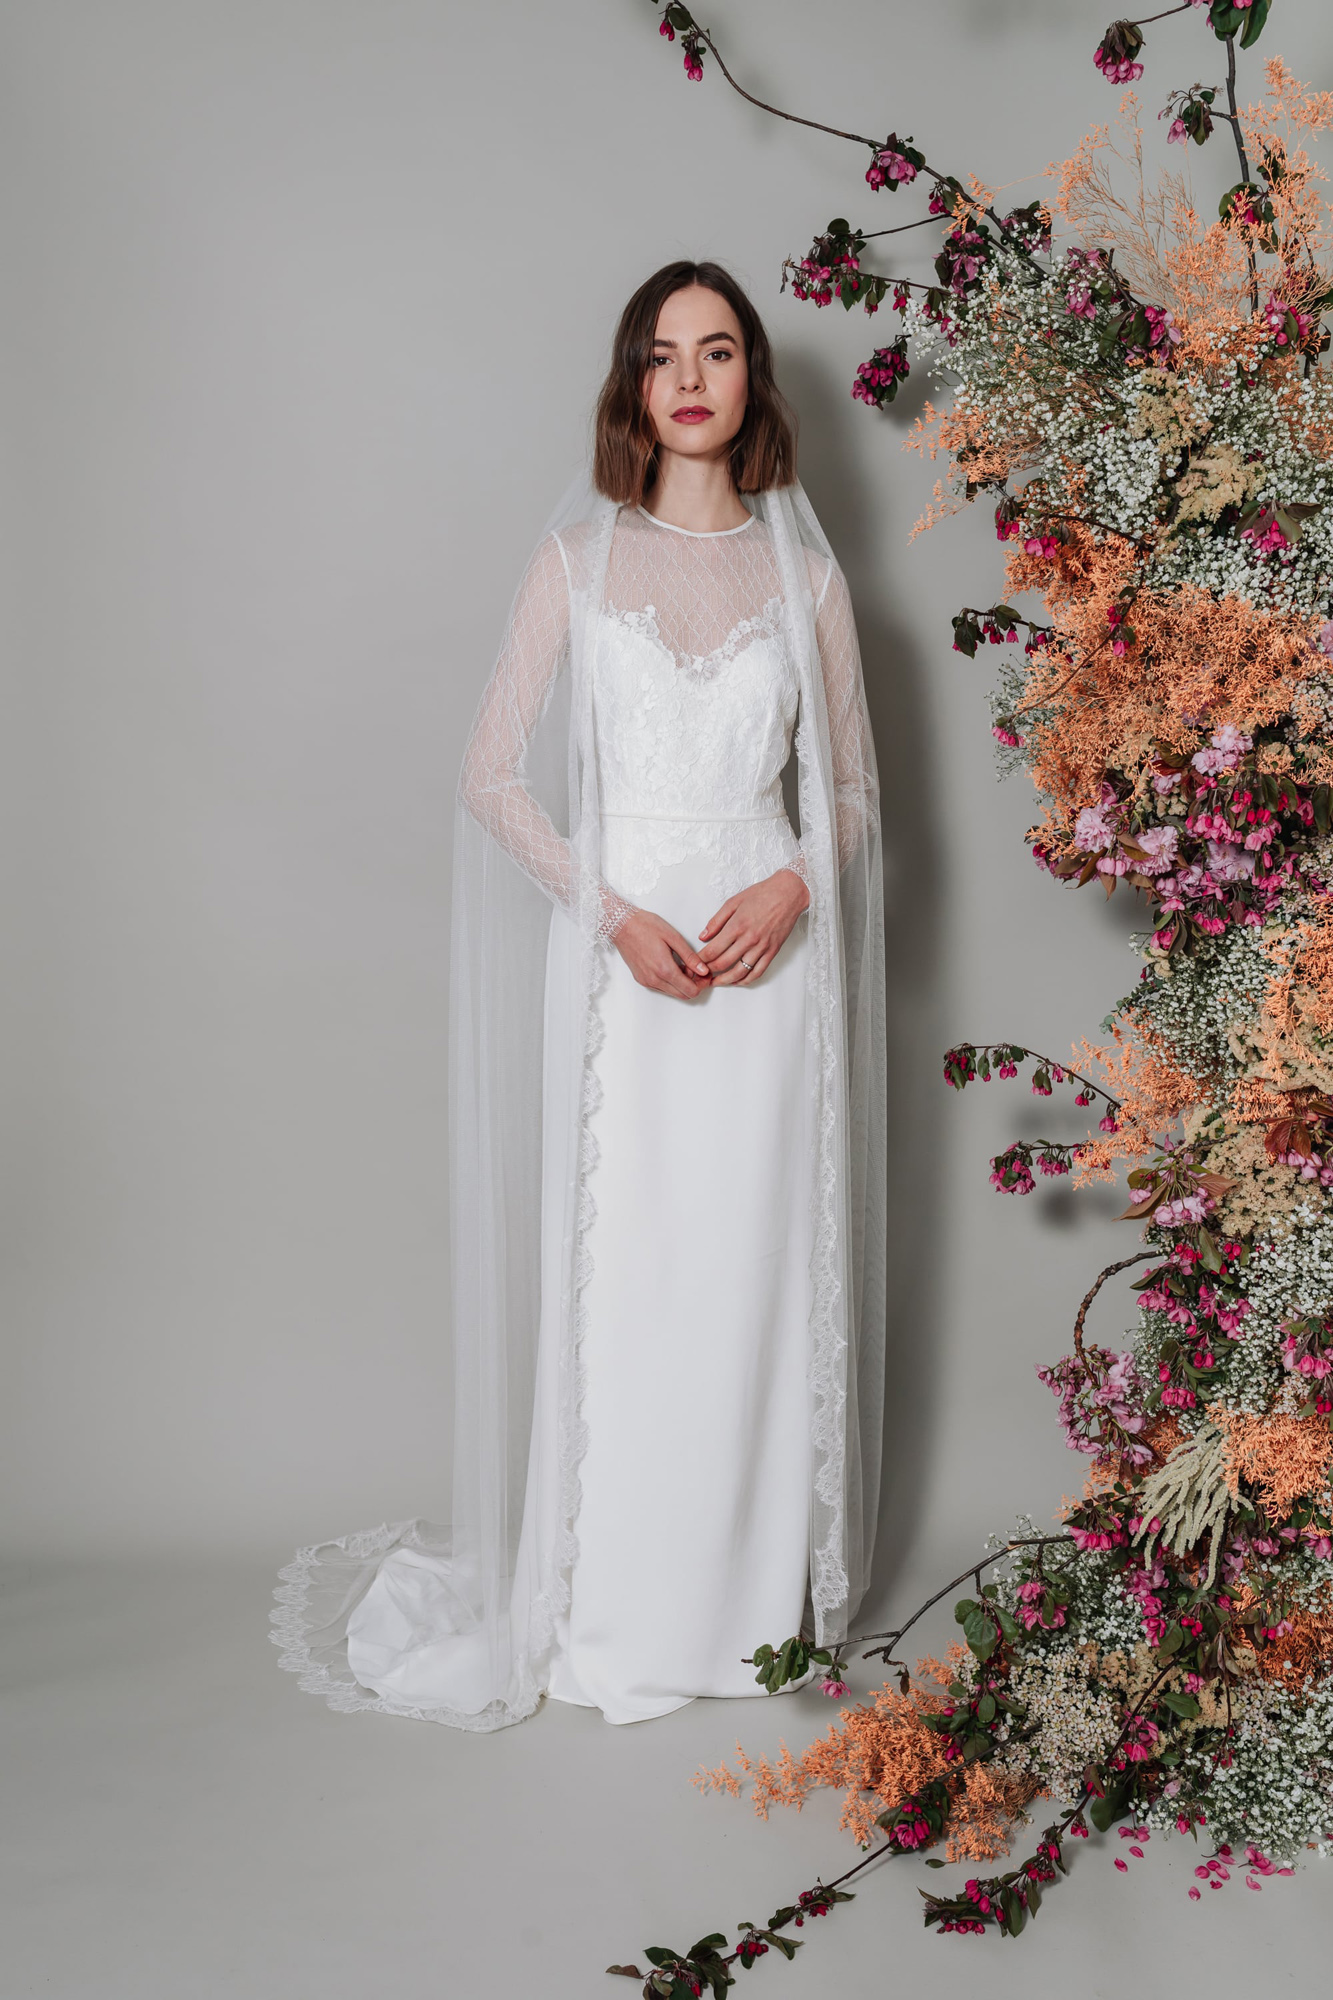 Kate-Beaumont-Sheffield-Geranium-Applique-Lace-Silk-Modern-Minimal-Long-Sleeved-Wedding-Gown-15.jpg